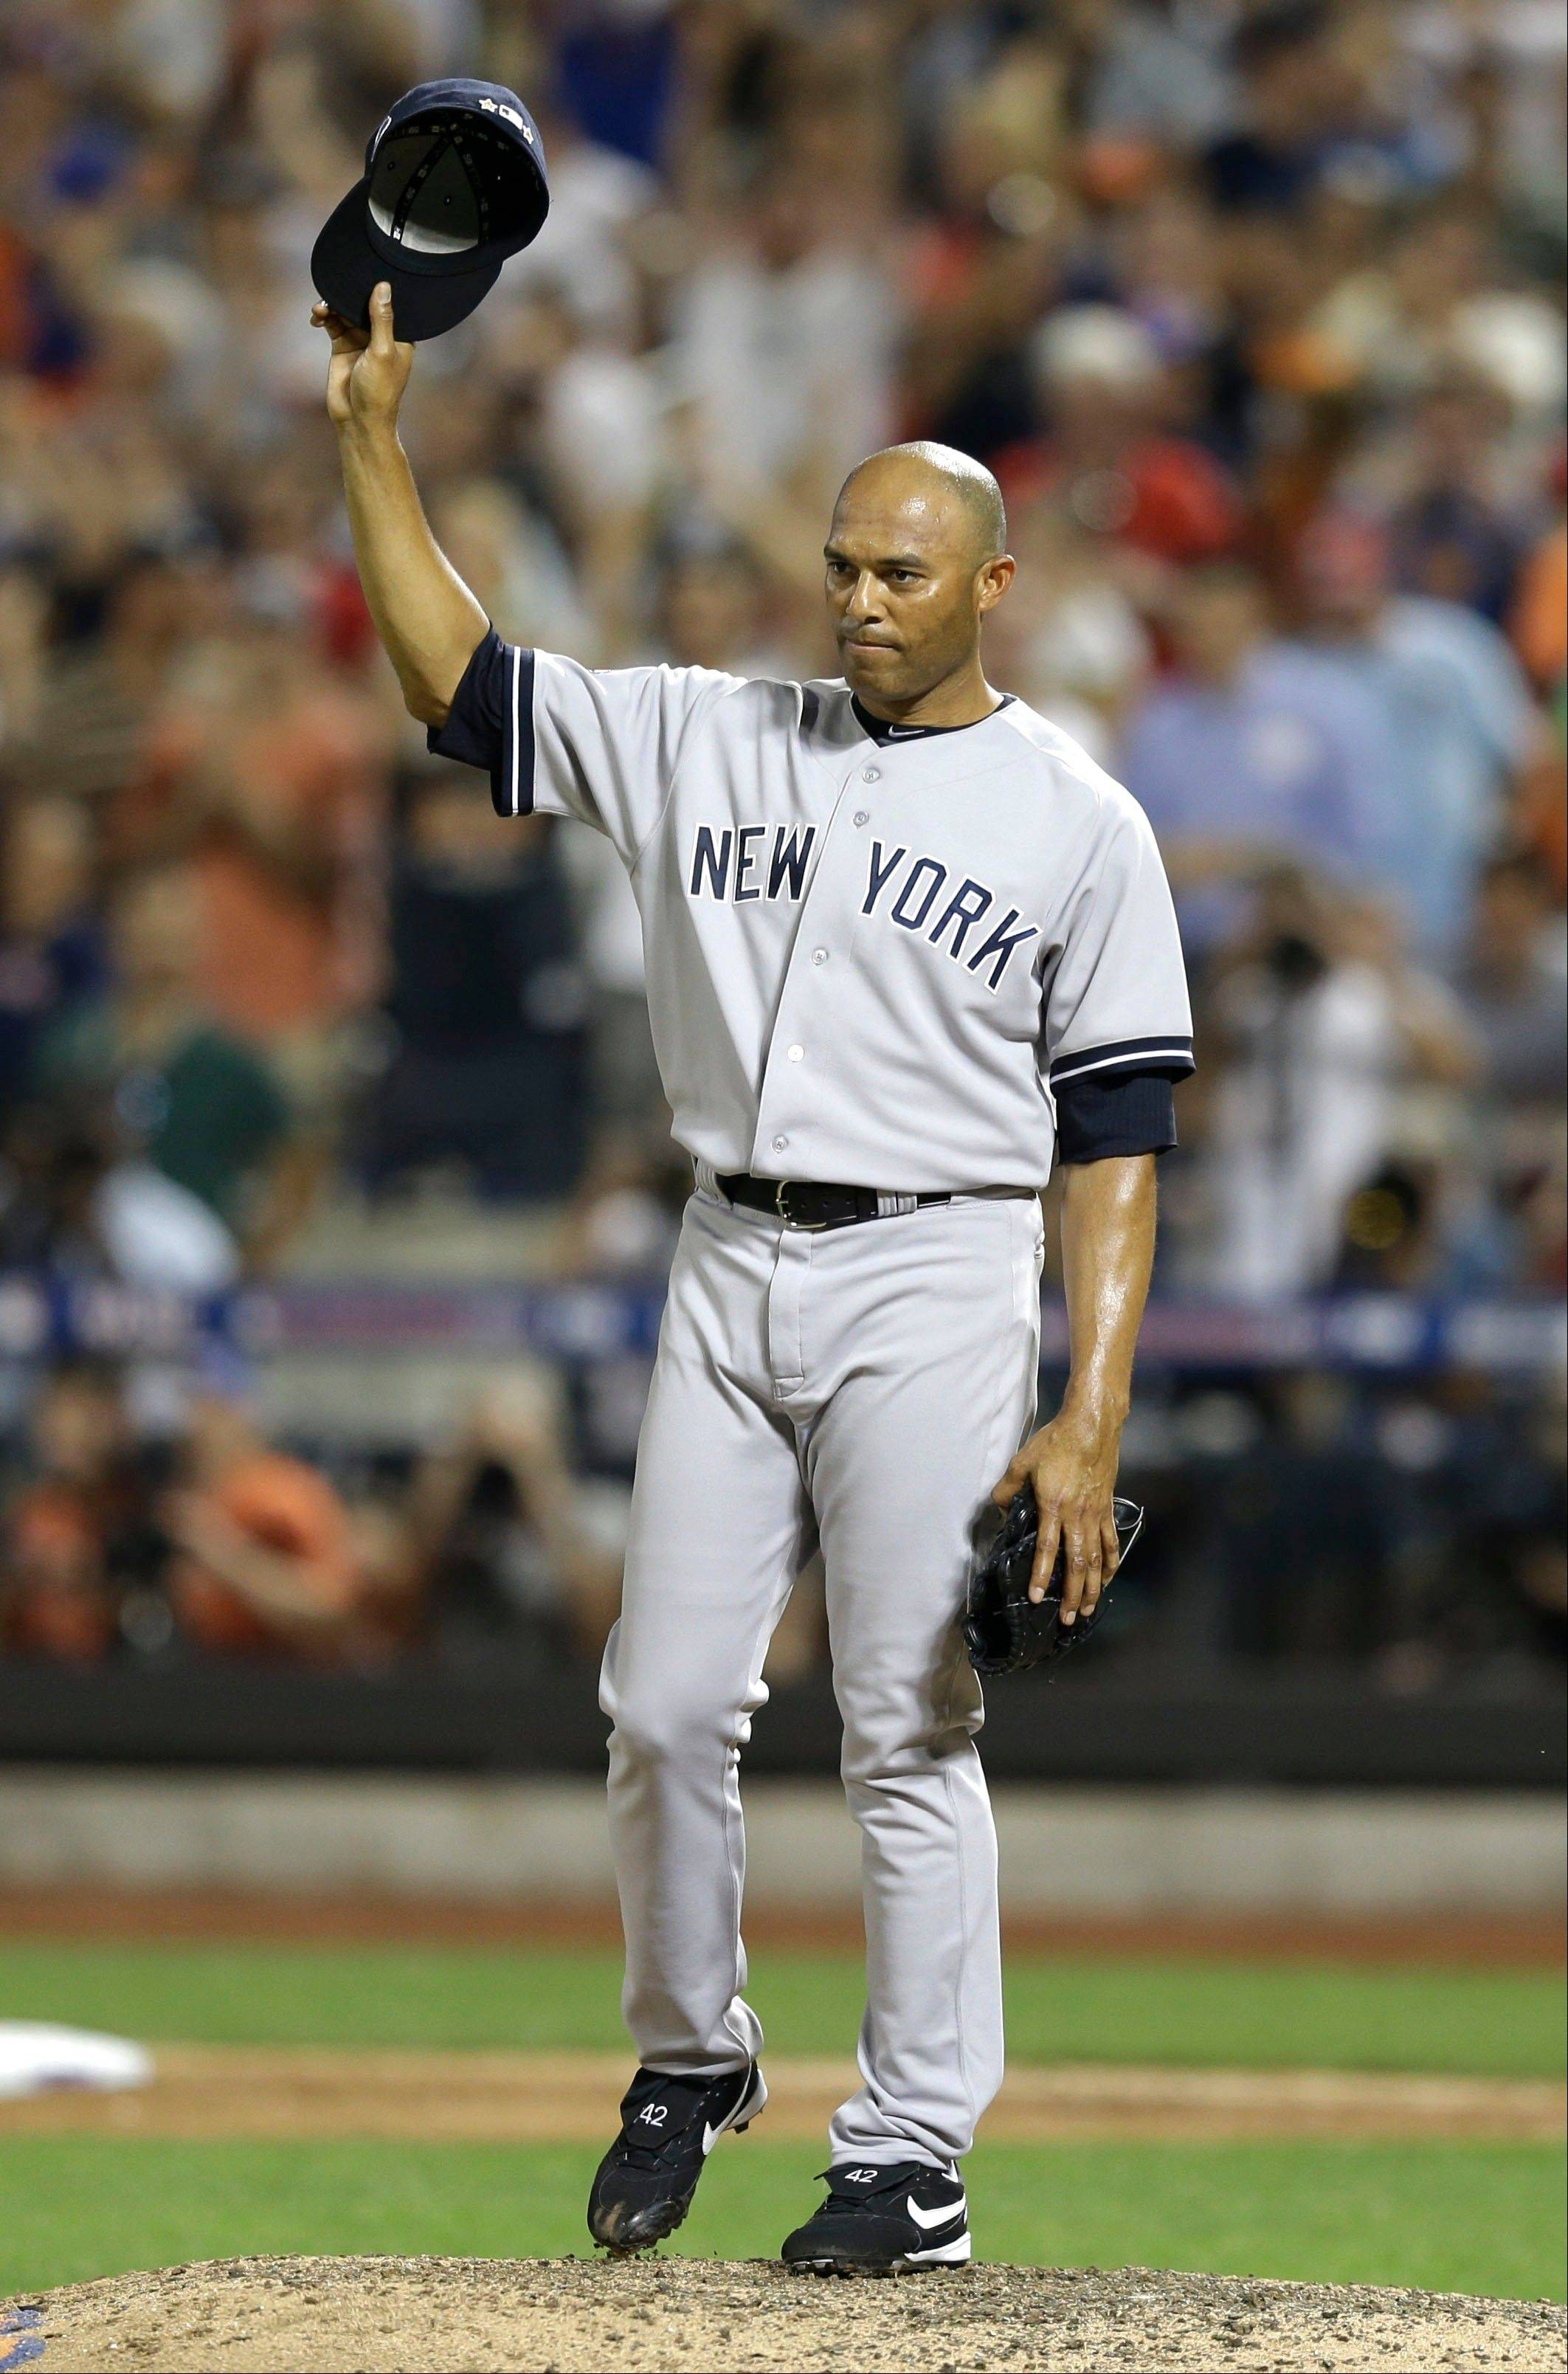 American League�s Mariano Rivera of the New York Yankees acknowledges a standing ovation during the MLB All-Star baseball game Tuesday night in New York. Rivera, 43, who is retiring at the end of the season, pitched a perfect eighth inning to help the American League win 3-0.